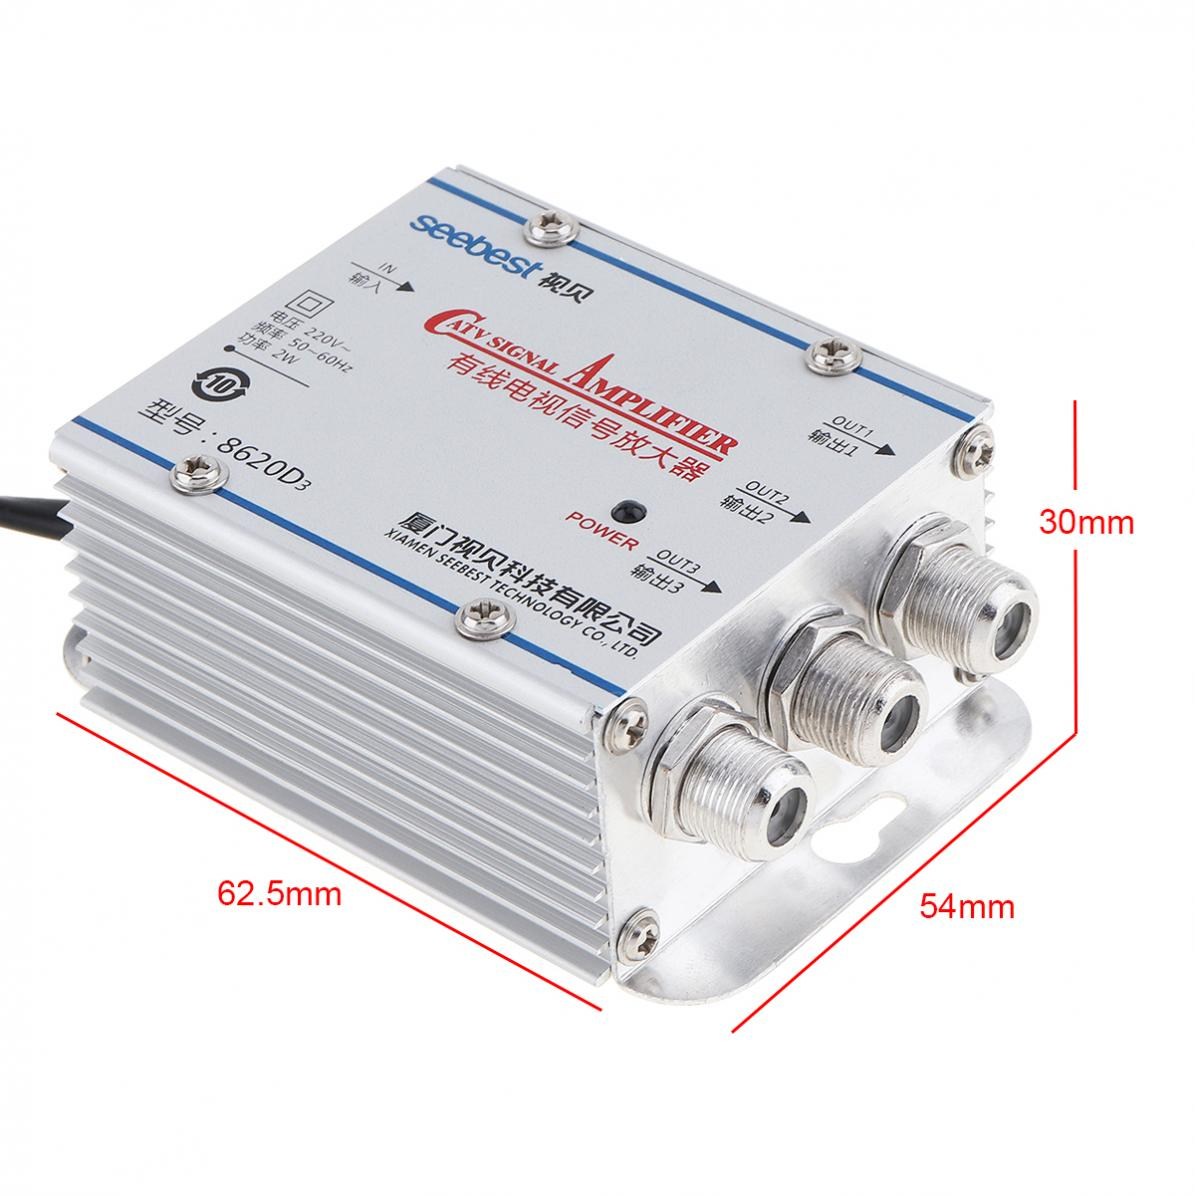 Signal-Amplifier-45-860MHz-1-In-3-Out-CATV-VCR-20DB-TV-Antenna-Booster-Splitter thumbnail 2